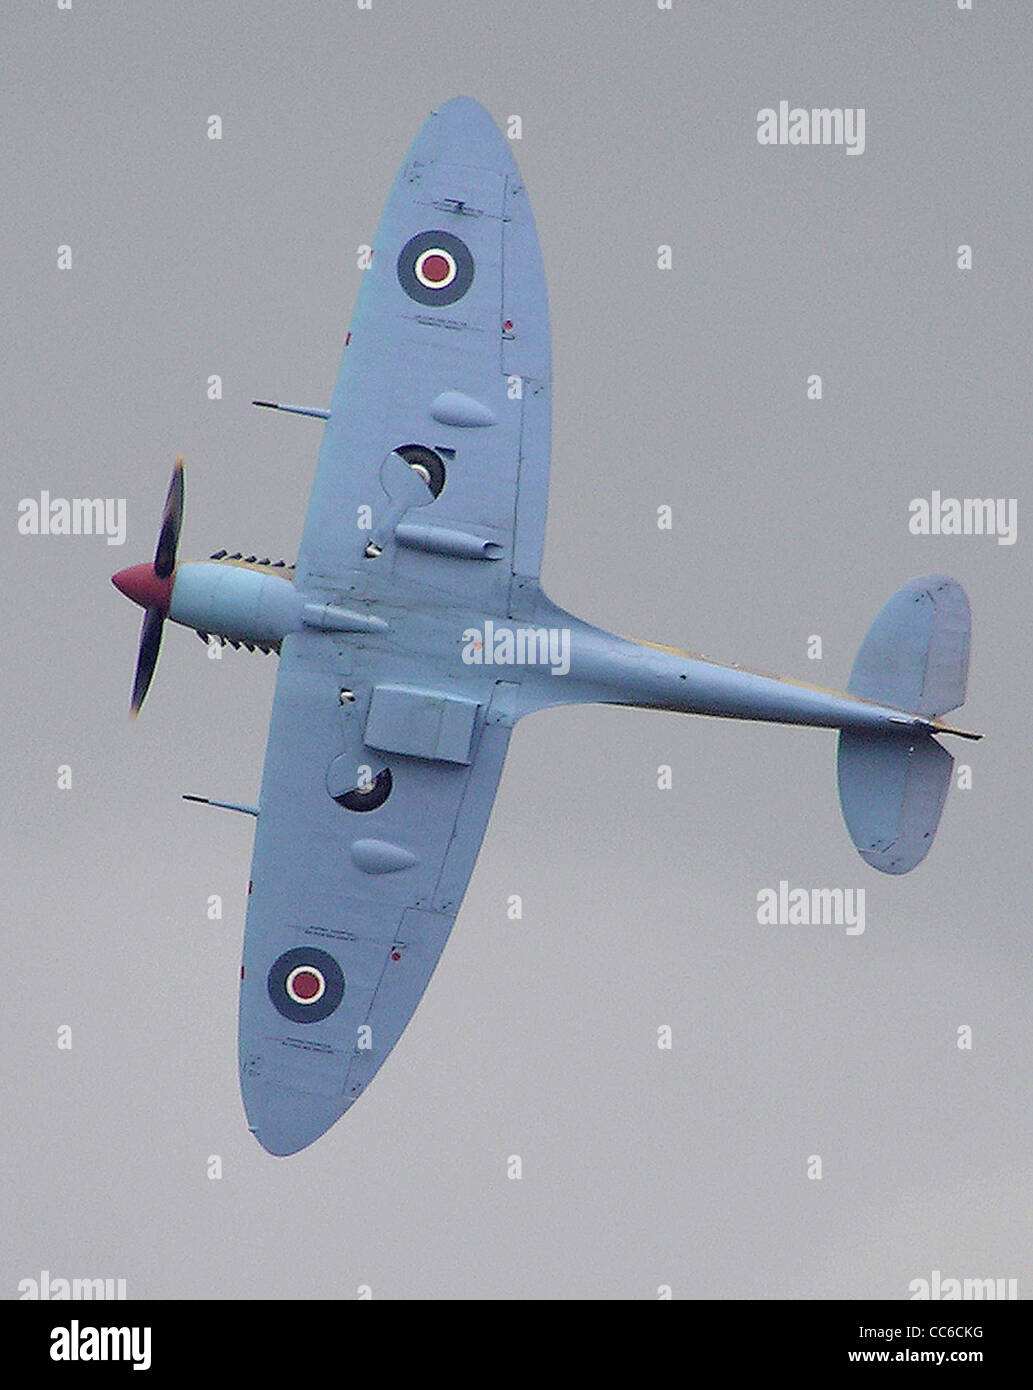 spitfire planform at Kemble Air Day, Kemble airfield, Gloucestershire, England. - Stock Image